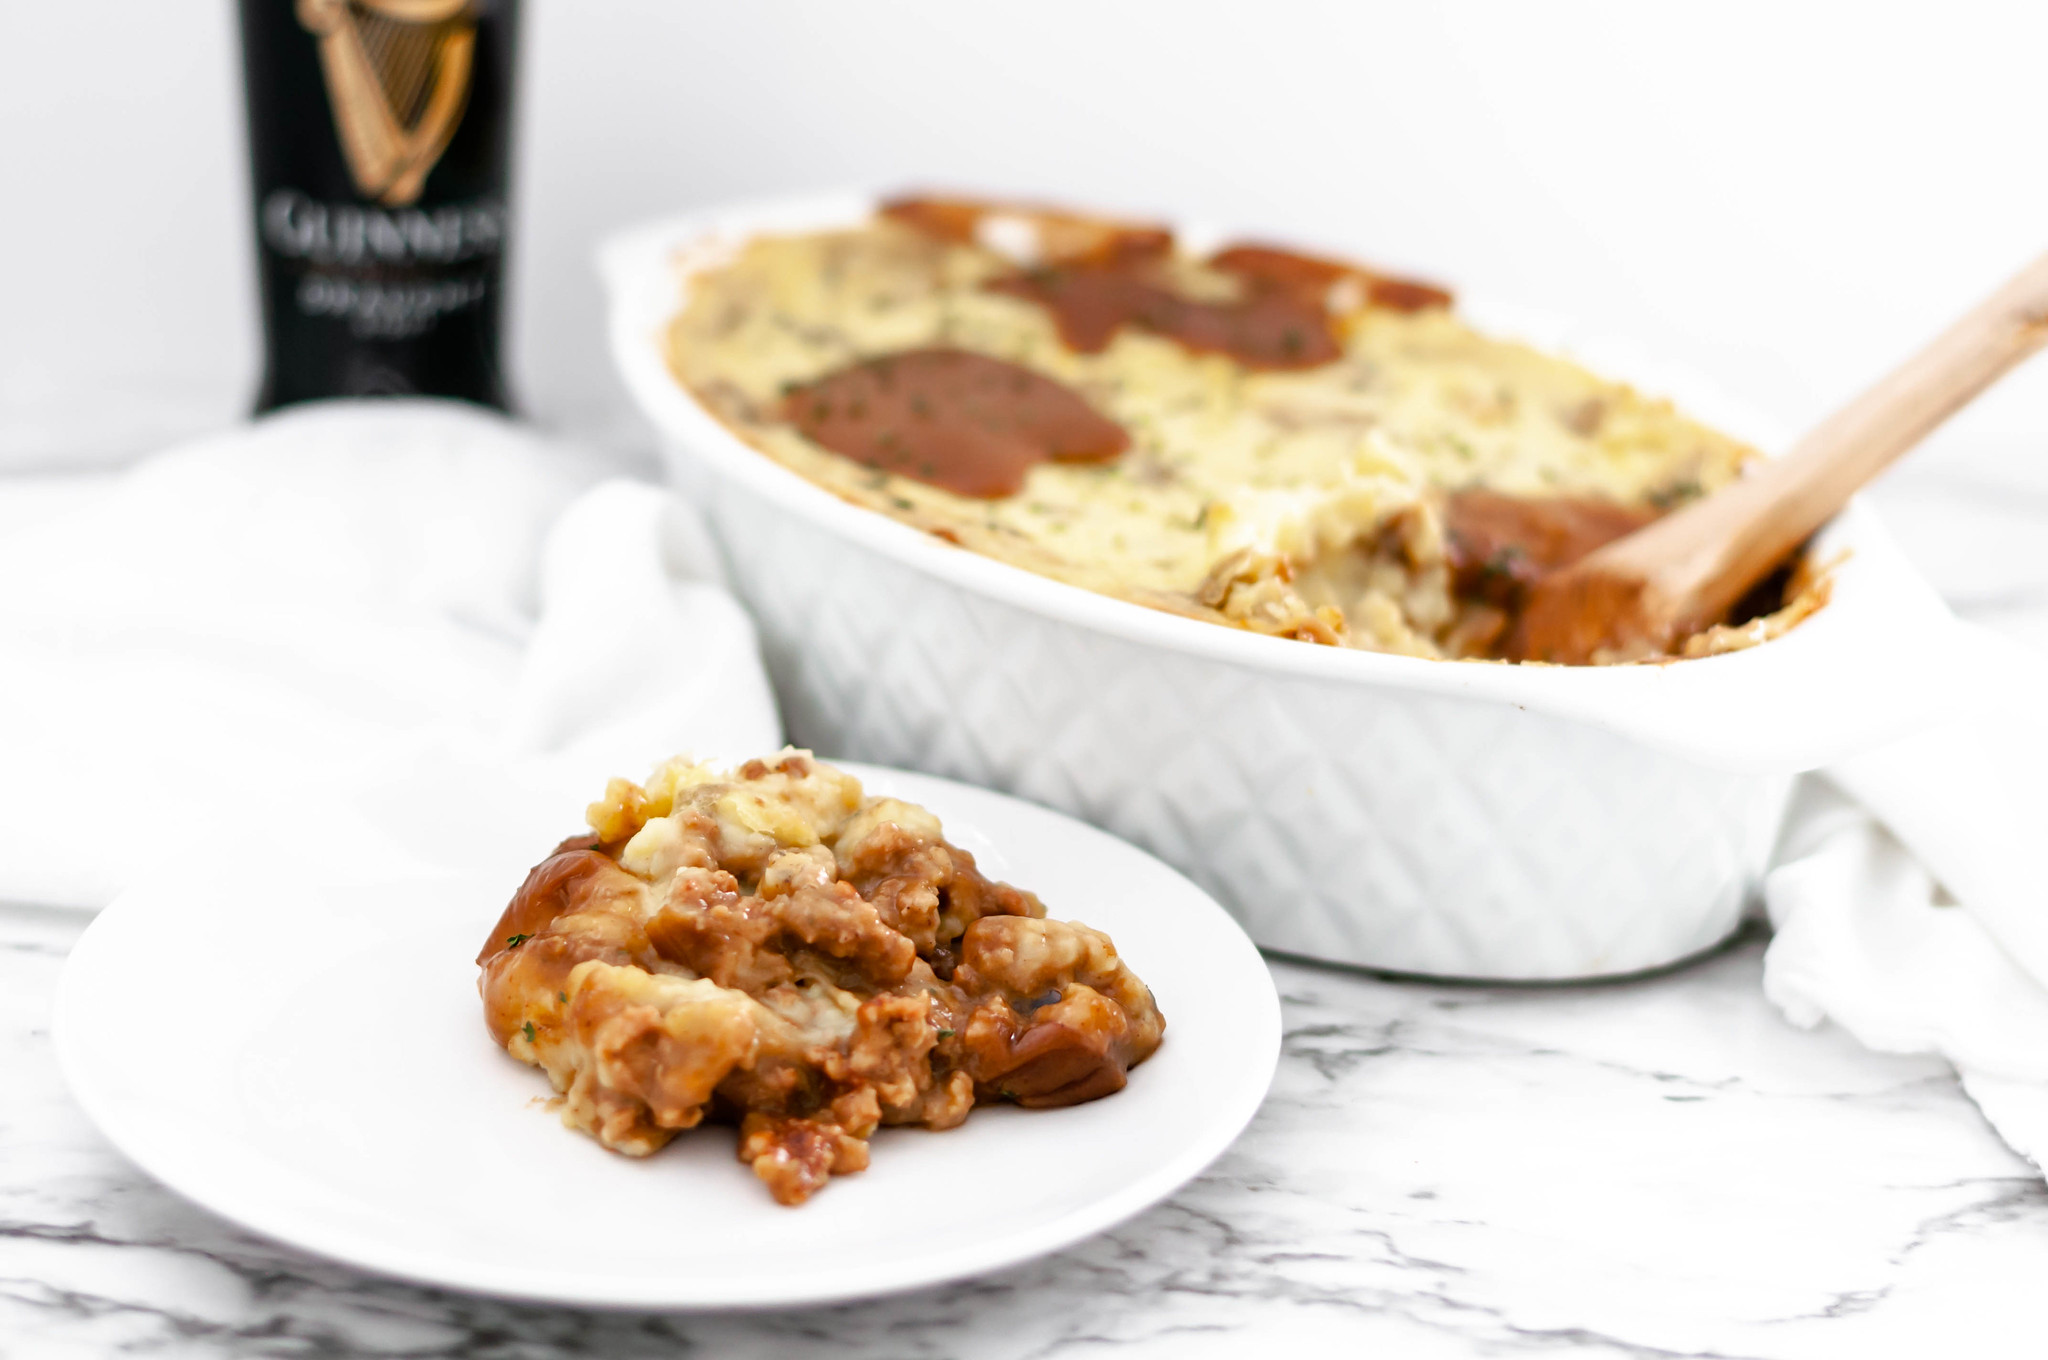 This rich and hearty Bangers and Mash Casserole would be perfect for St. Patrick's Day. All the classic flavors and ingredients of Bangers and Mash combined into a hearty casserole.